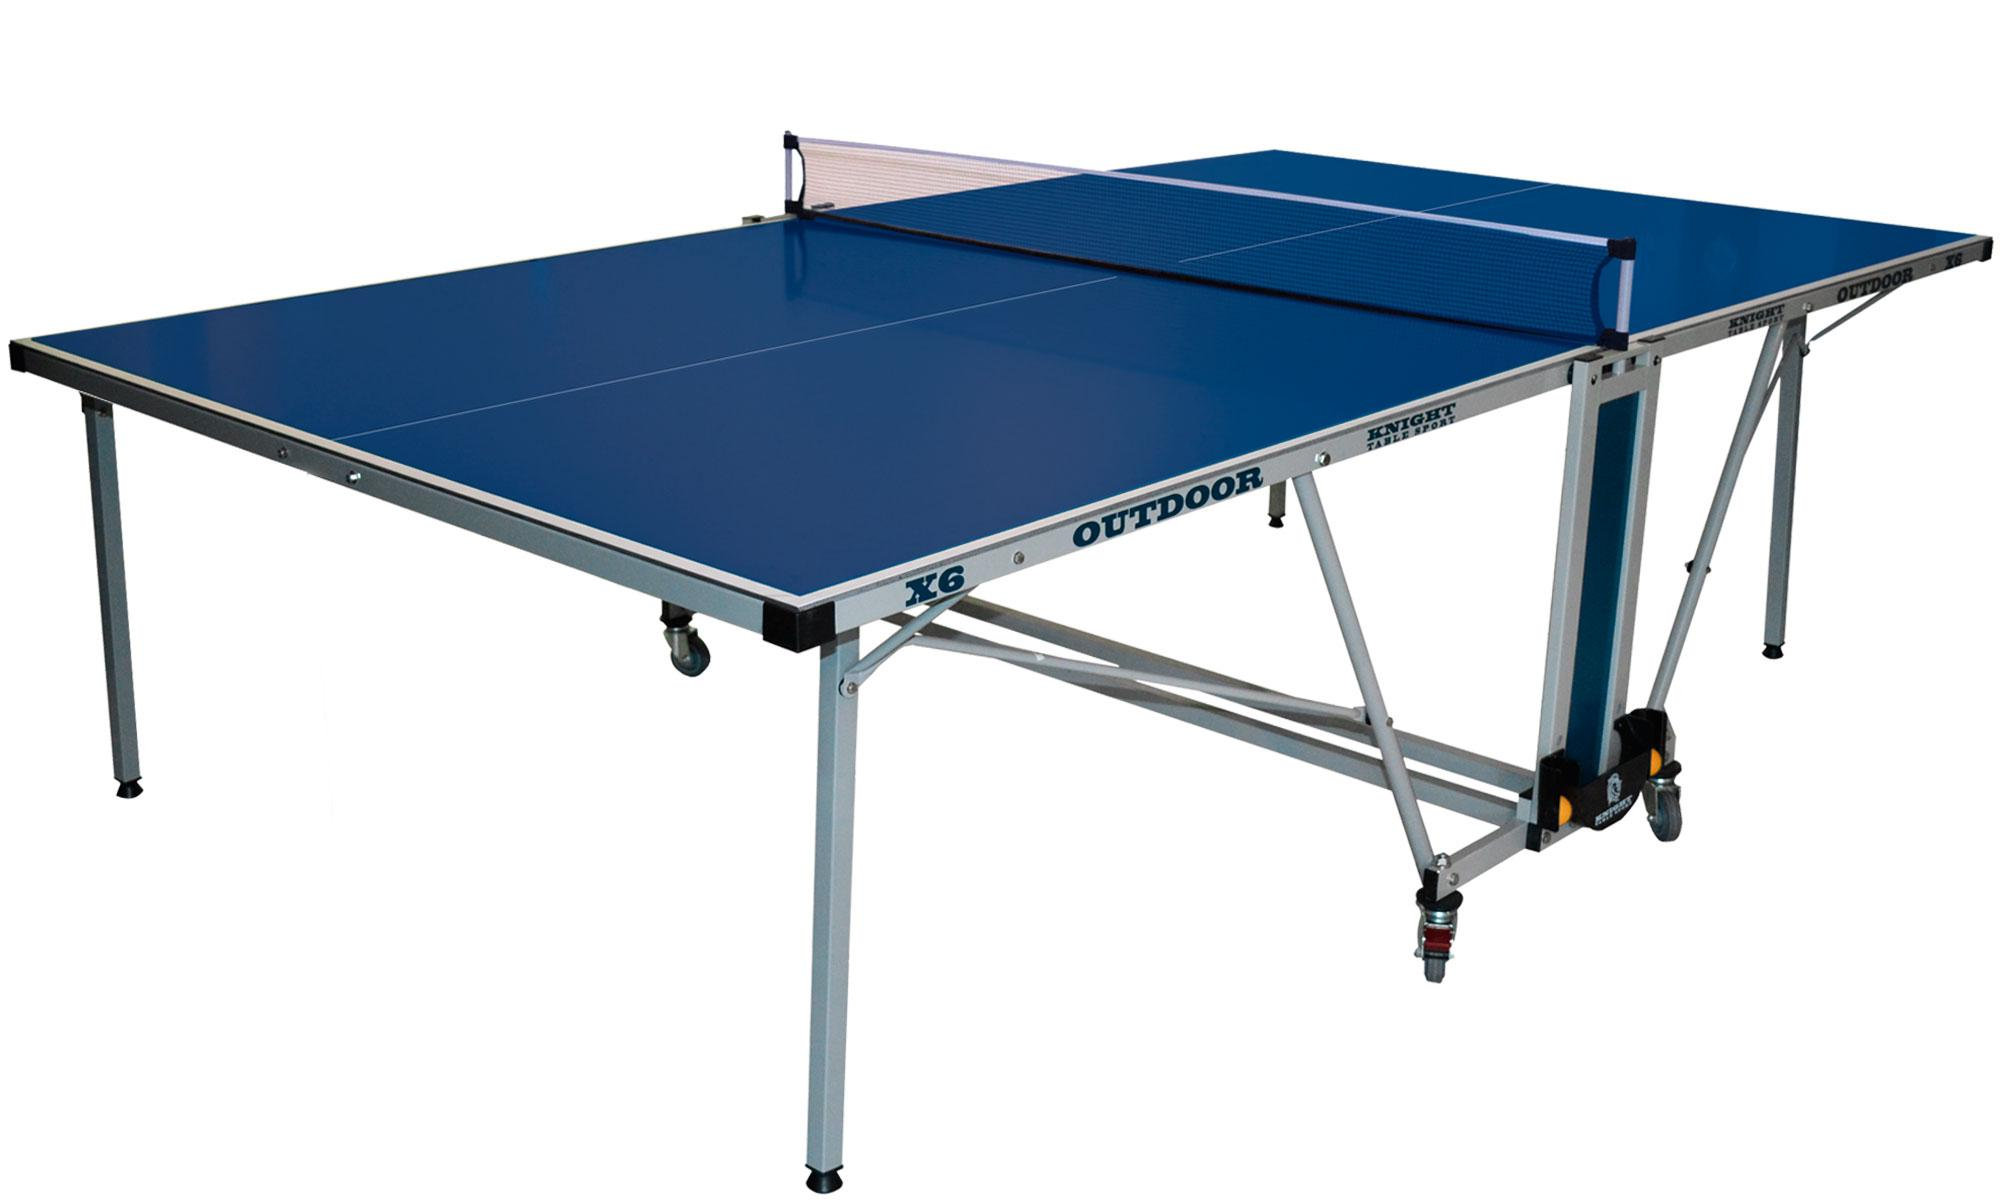 Gallant knight x 6 outdoor table tennis table table tennis - Weatherproof table tennis table ...